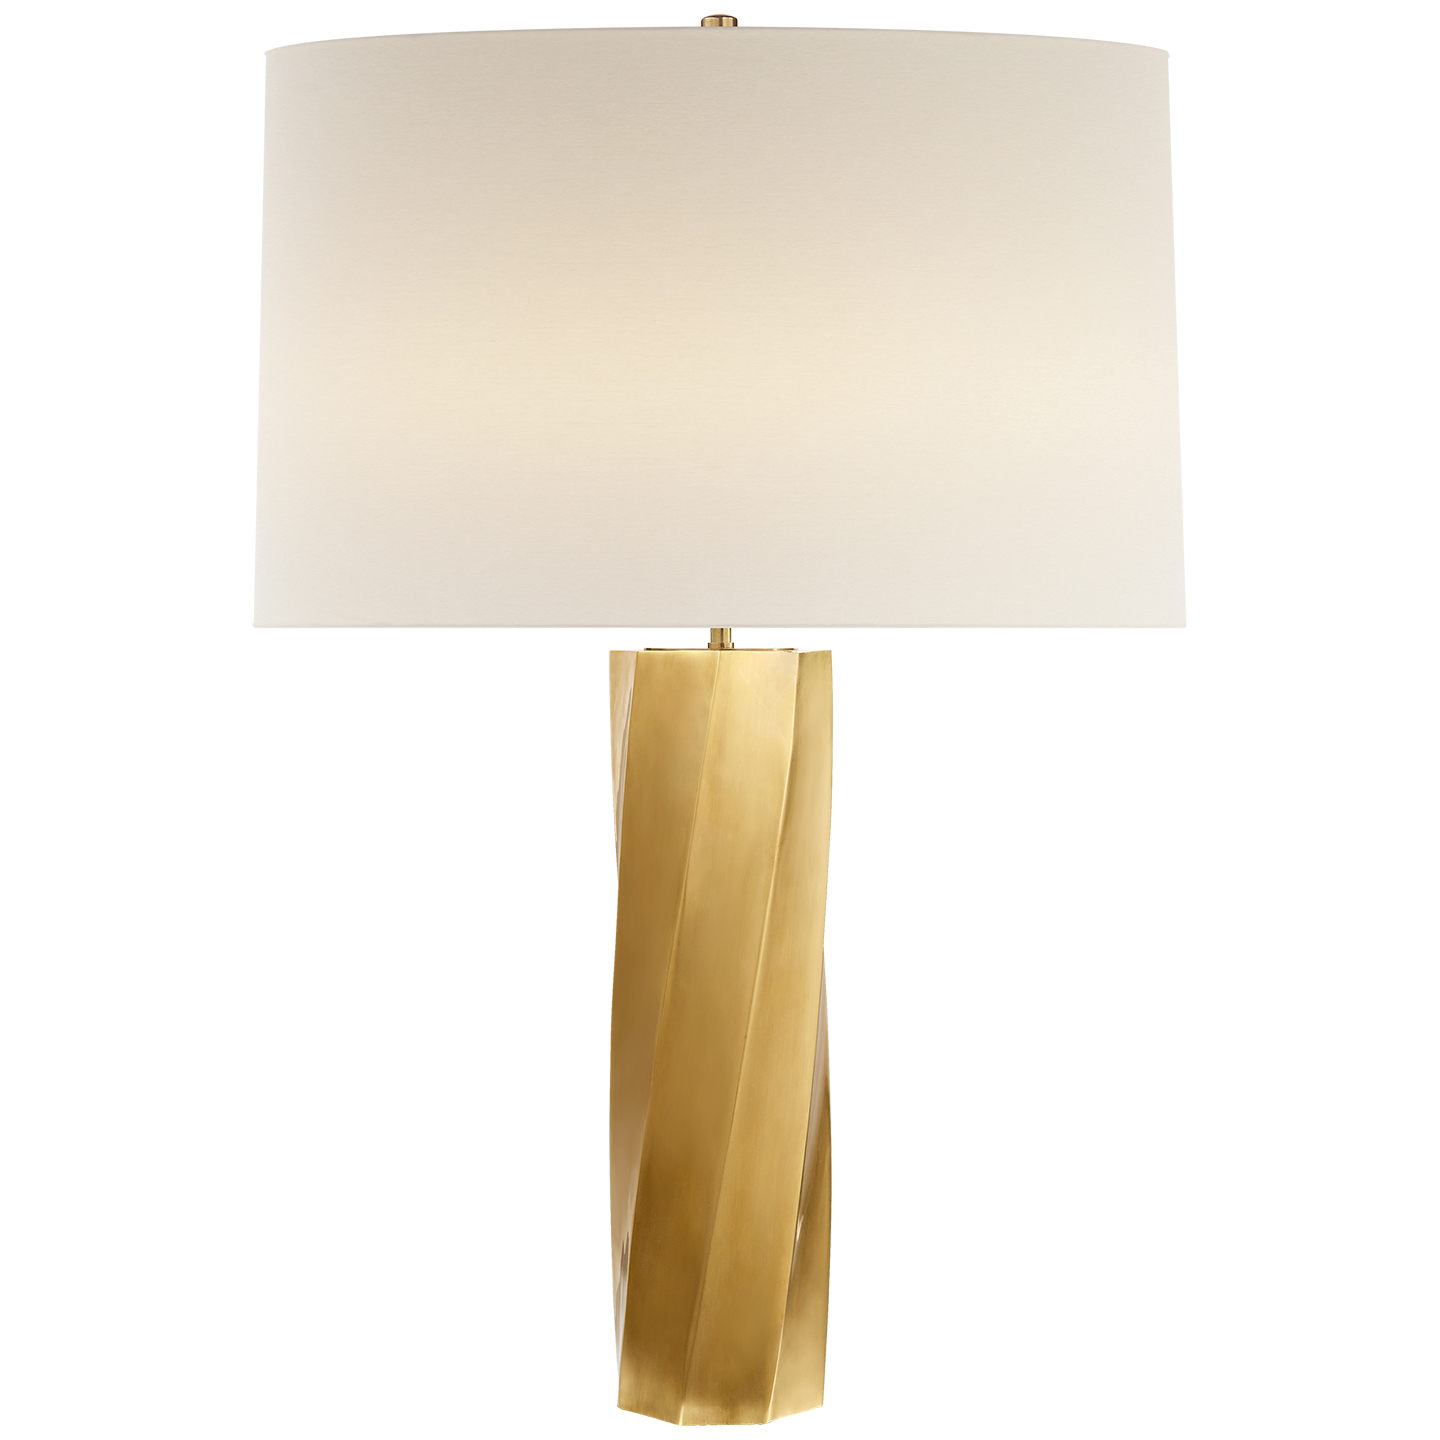 table full lamps furniture new nickel design lamp modern ideas size of large leaf ang agate home